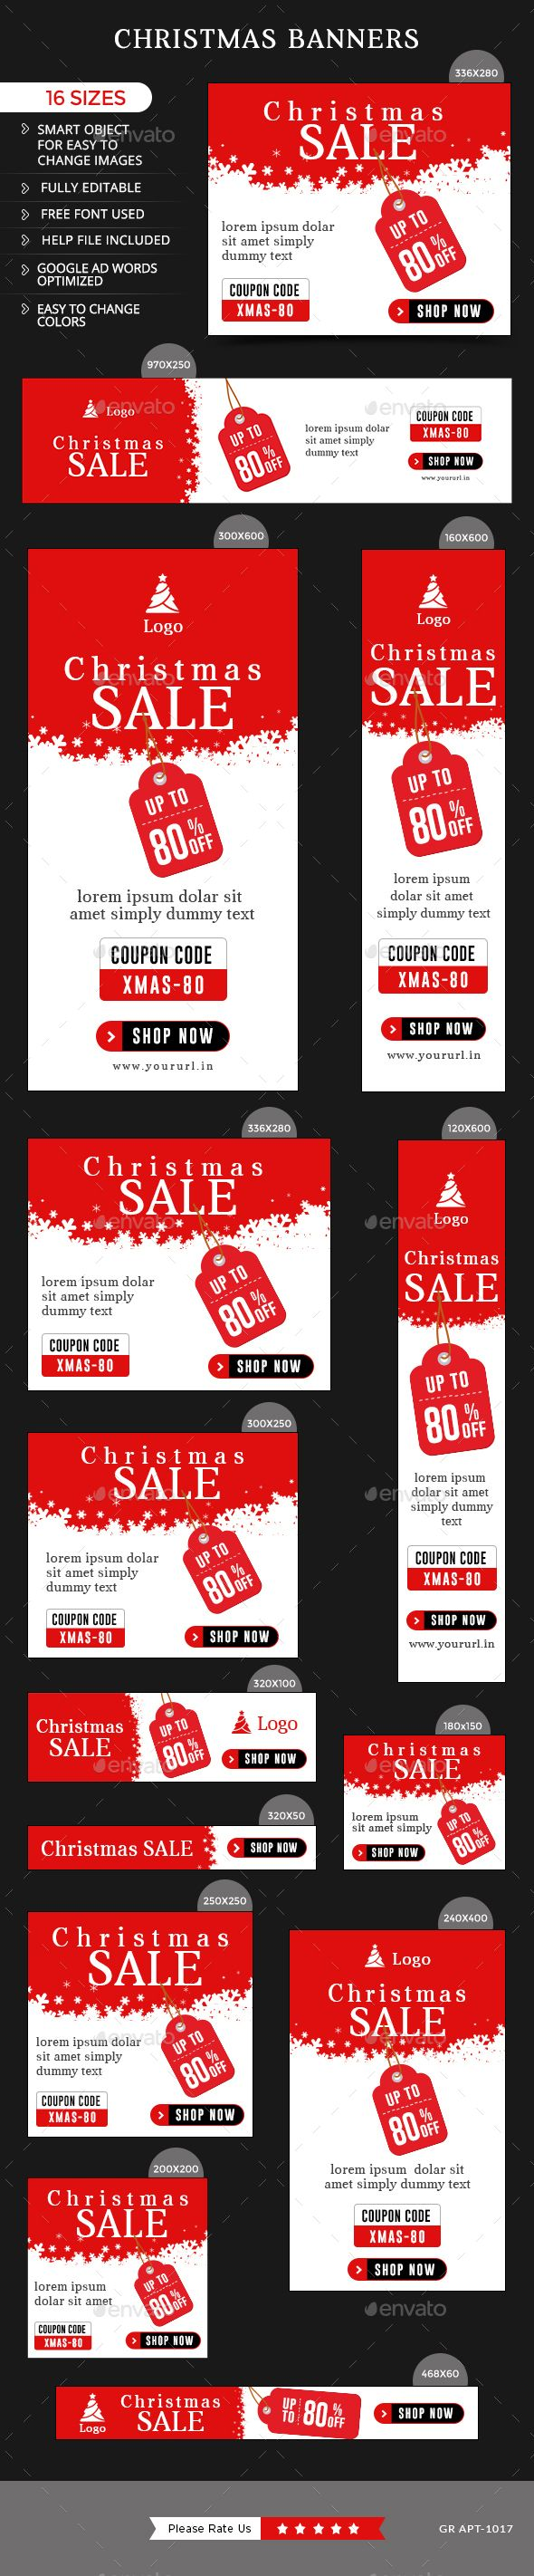 Christmas Banners — Photoshop PSD #studio #google adwords • Available here → https://graphicriver.net/item/christmas-banners/13976641?ref=pxcr